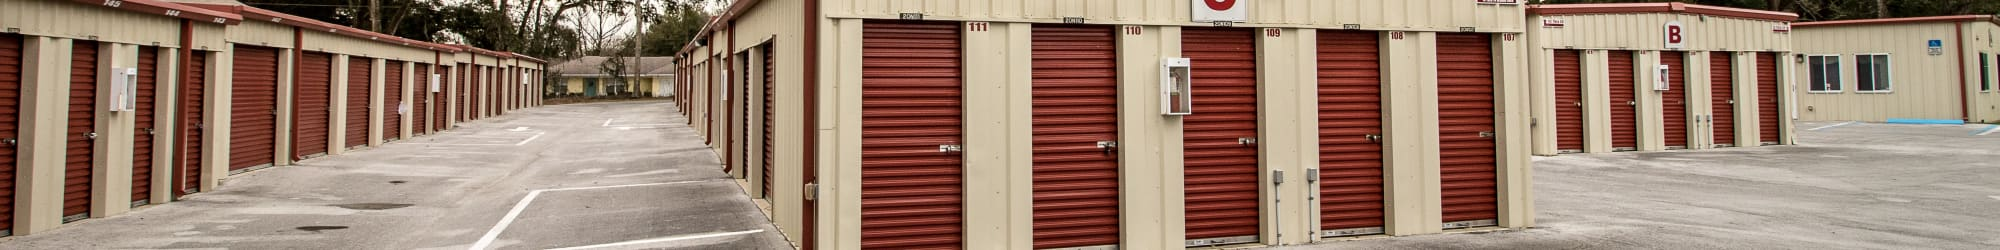 Self storage units for rent in Belleview, FL